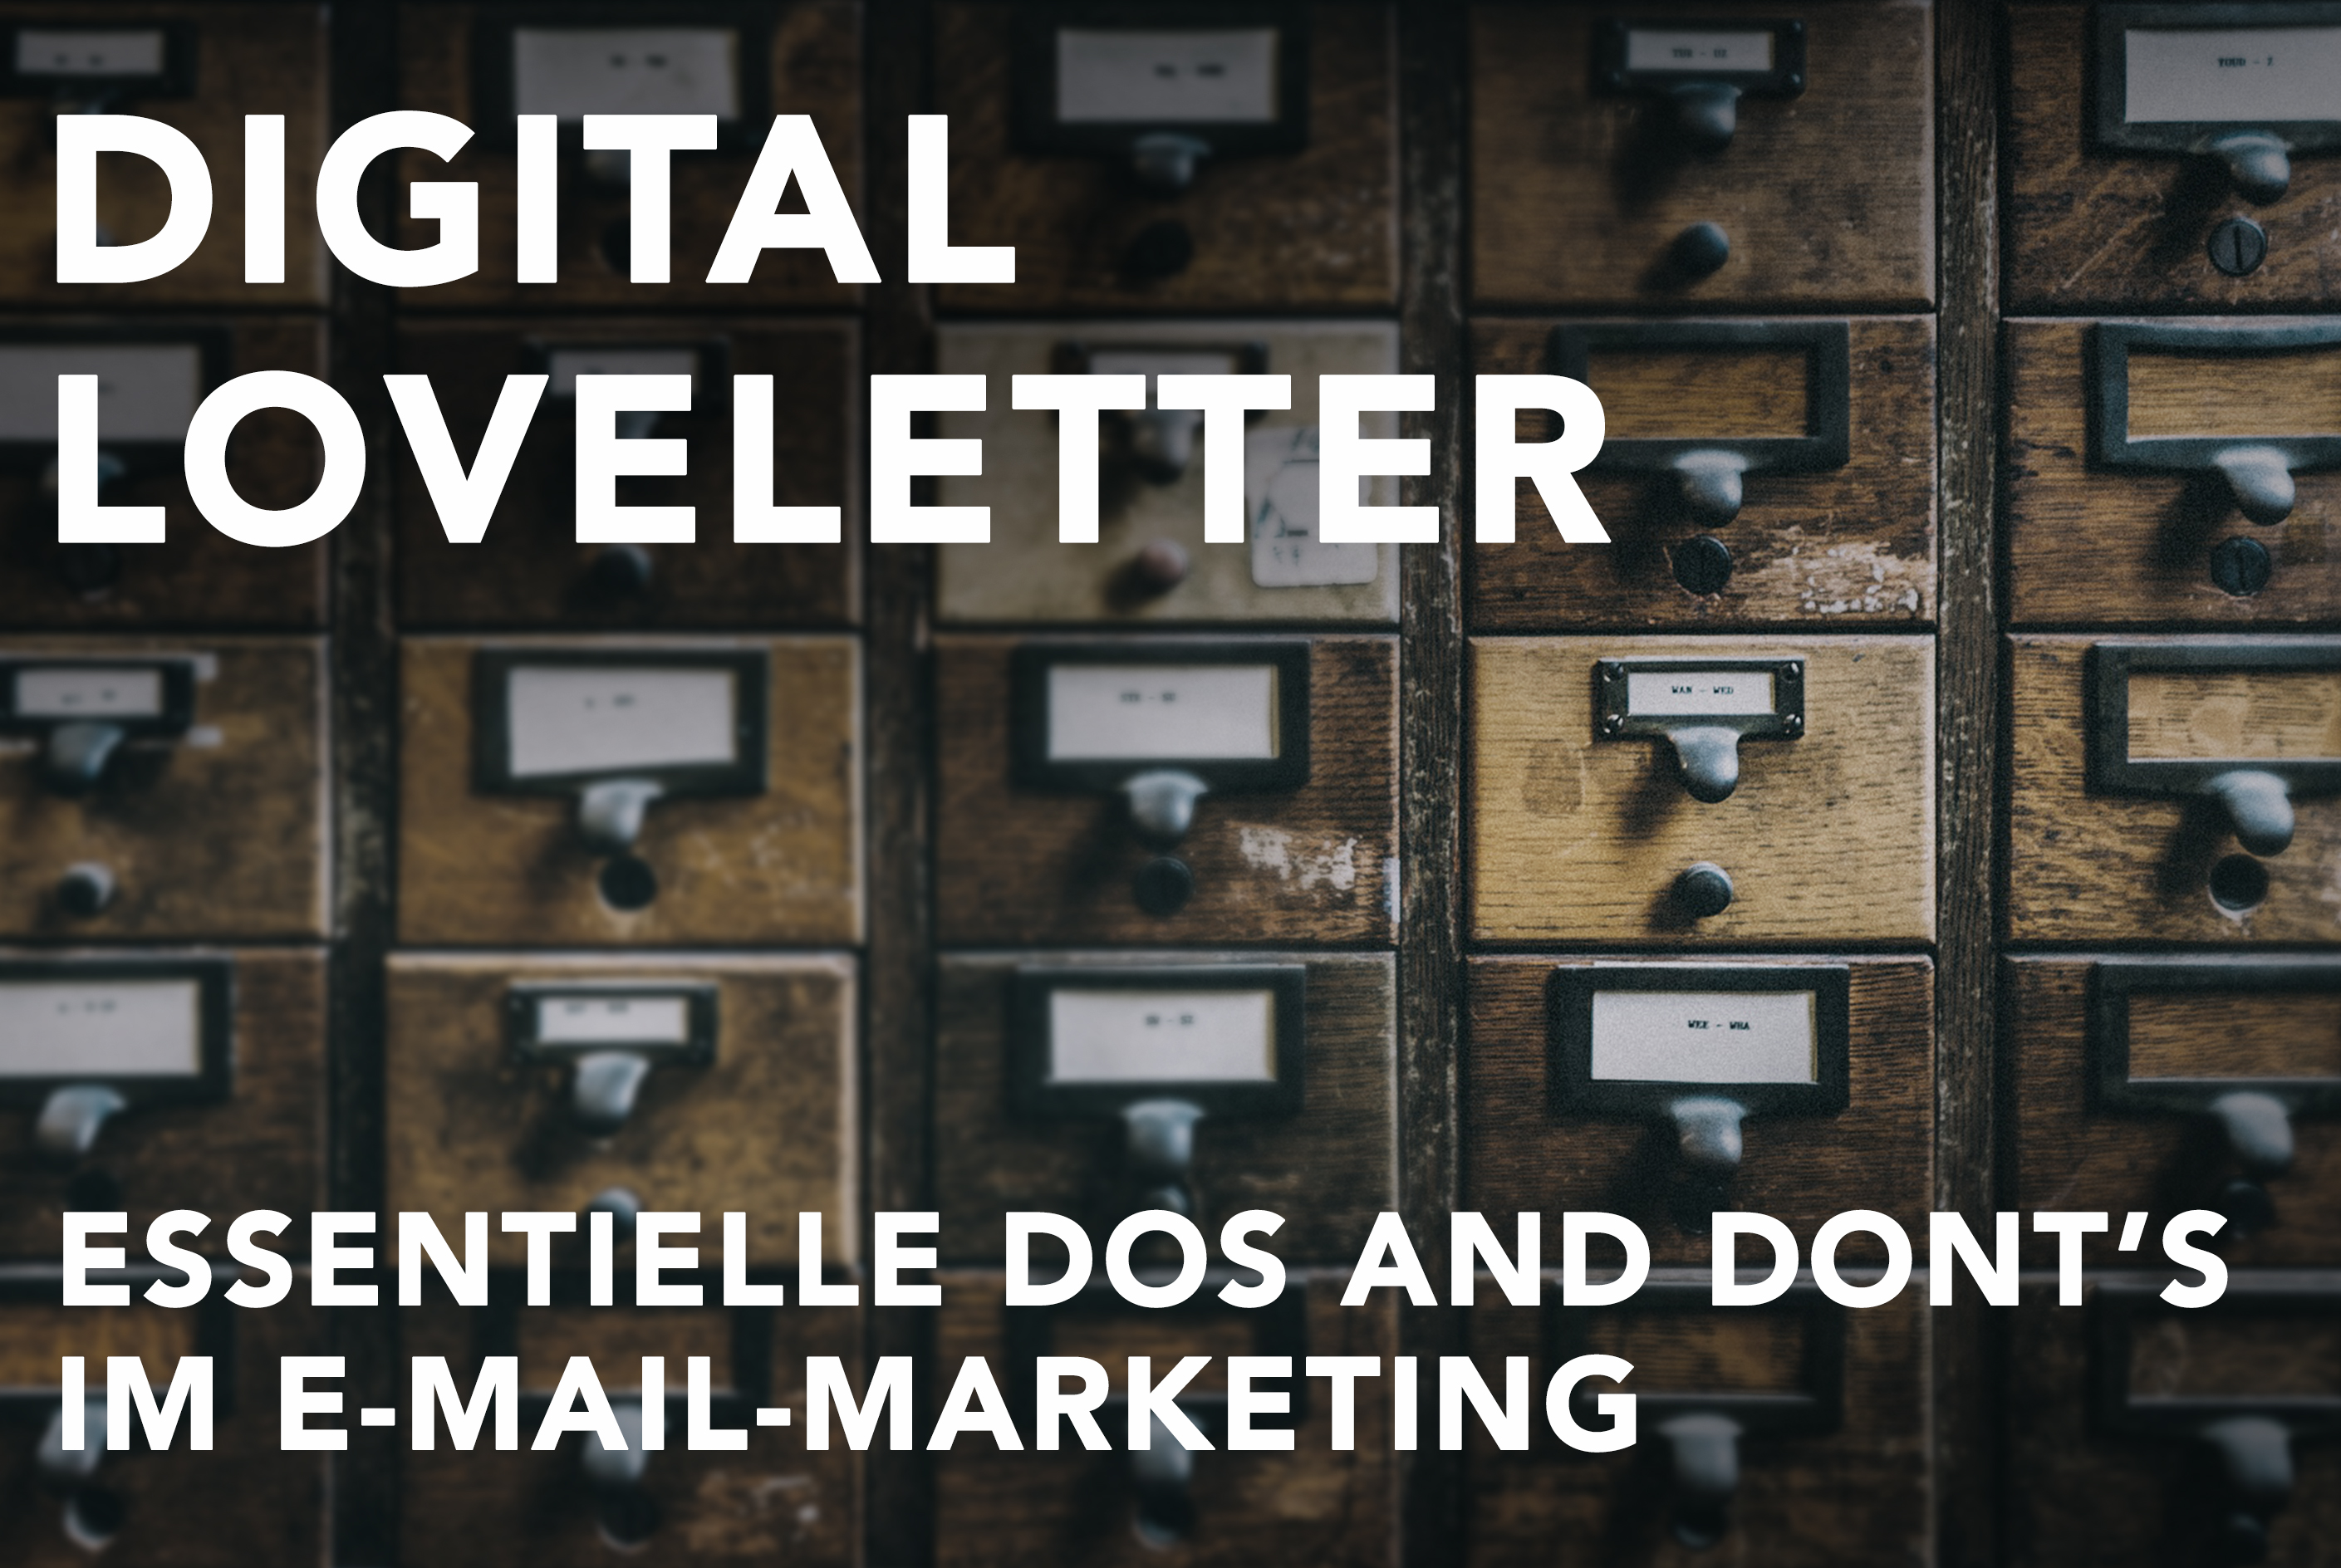 Digital Loveletter | Essentielle Dos and Dont's im E-Mail-Marketing